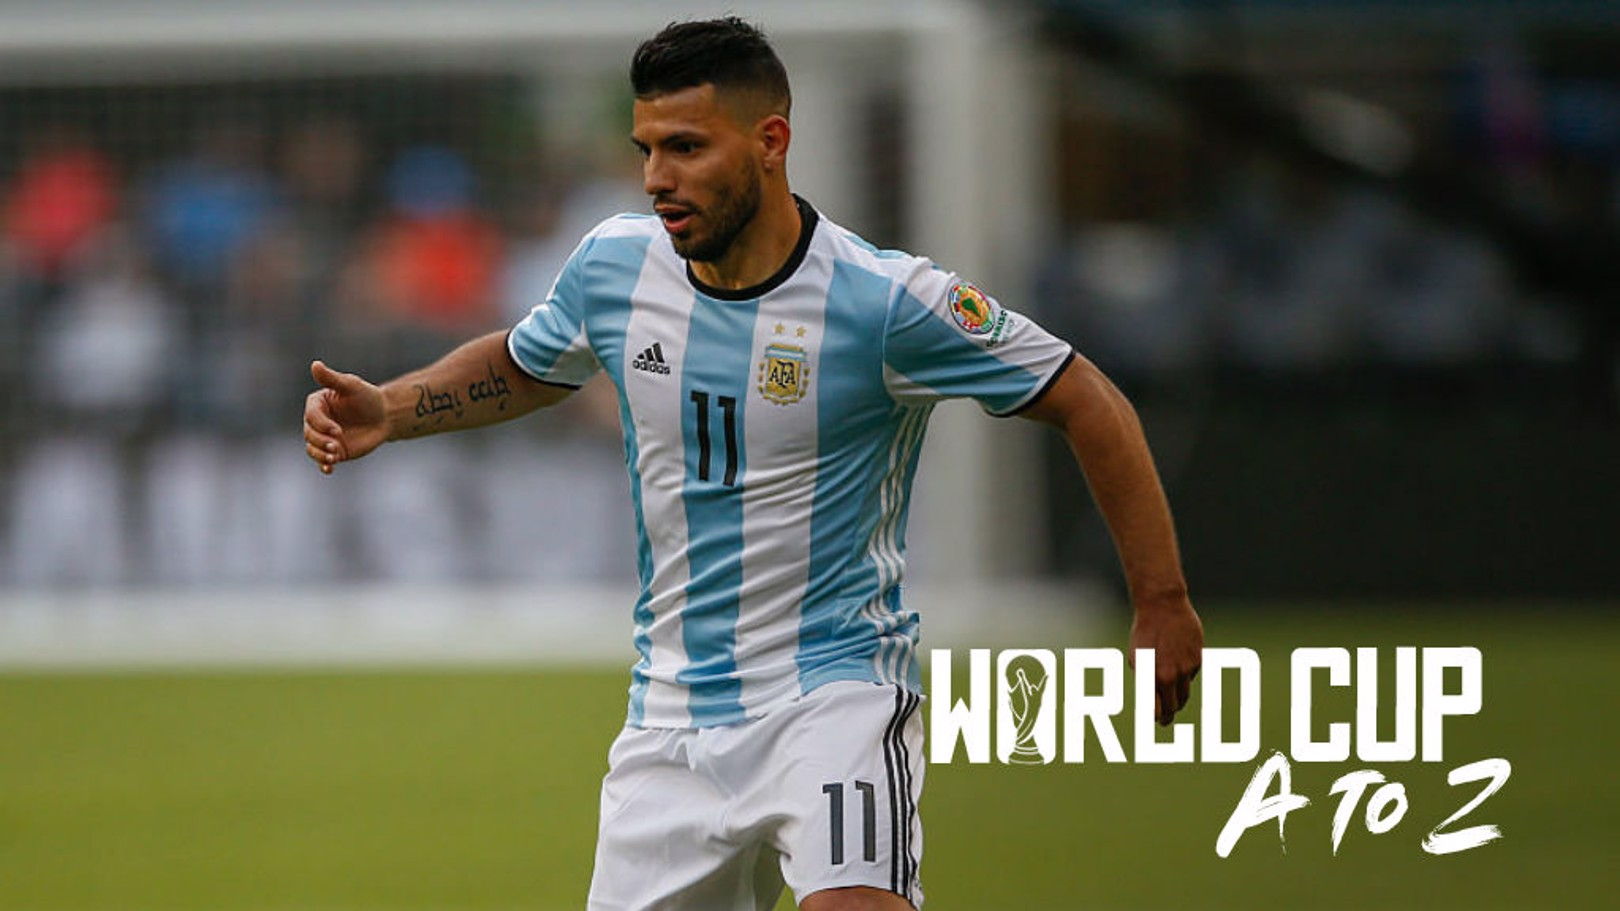 LETHAL WEAPON: Sergio Aguero will be hoping to help shoot Argentina to World Cup glory in Russia